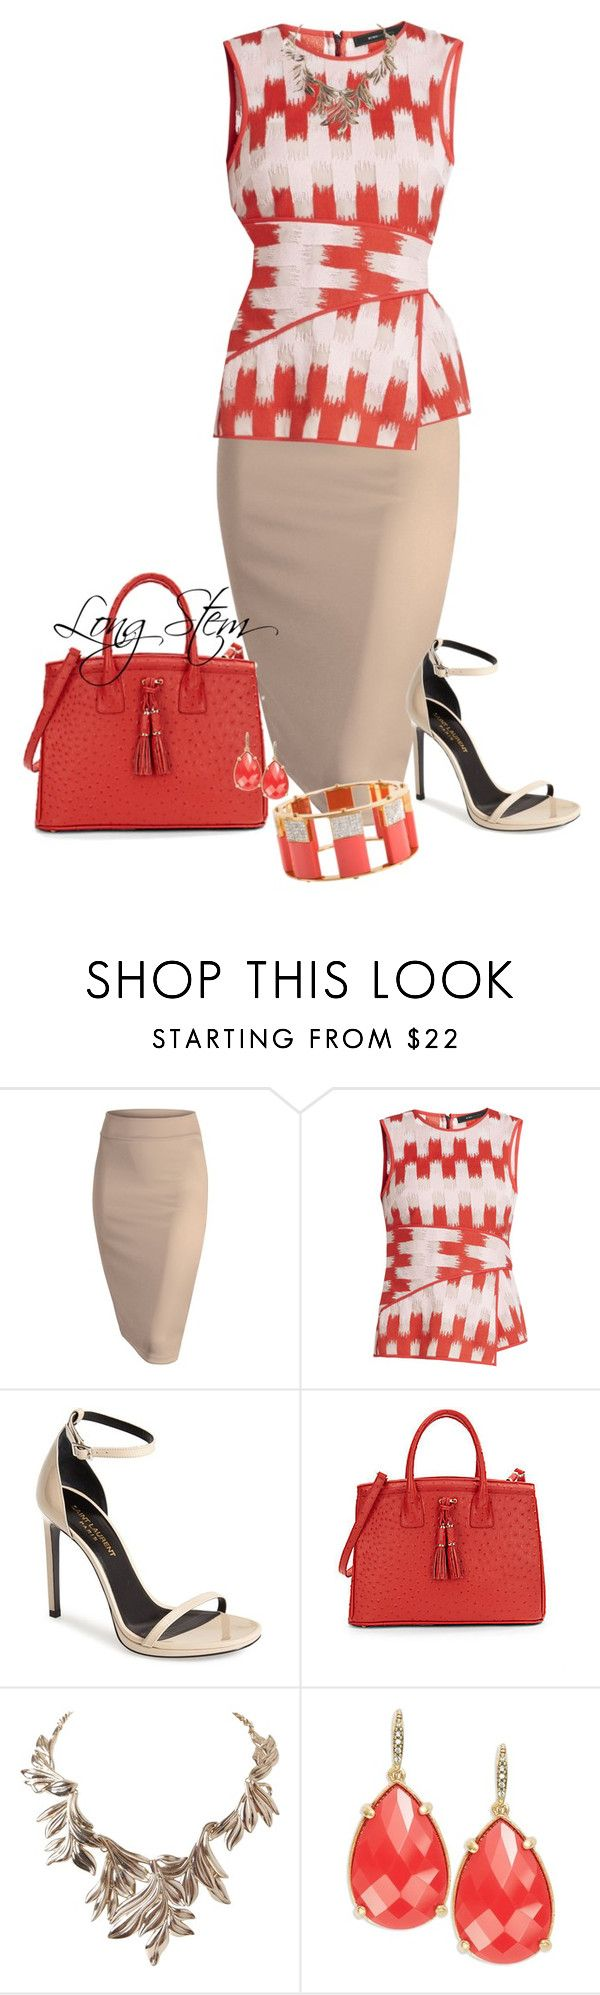 """""""07/07/15"""" by longstem ❤ liked on Polyvore featuring BCBGMAXAZRIA, Yves Saint Laurent, Ivanka Trump, Humble Chic, ABS by Allen Schwartz and Lele Sadoughi"""